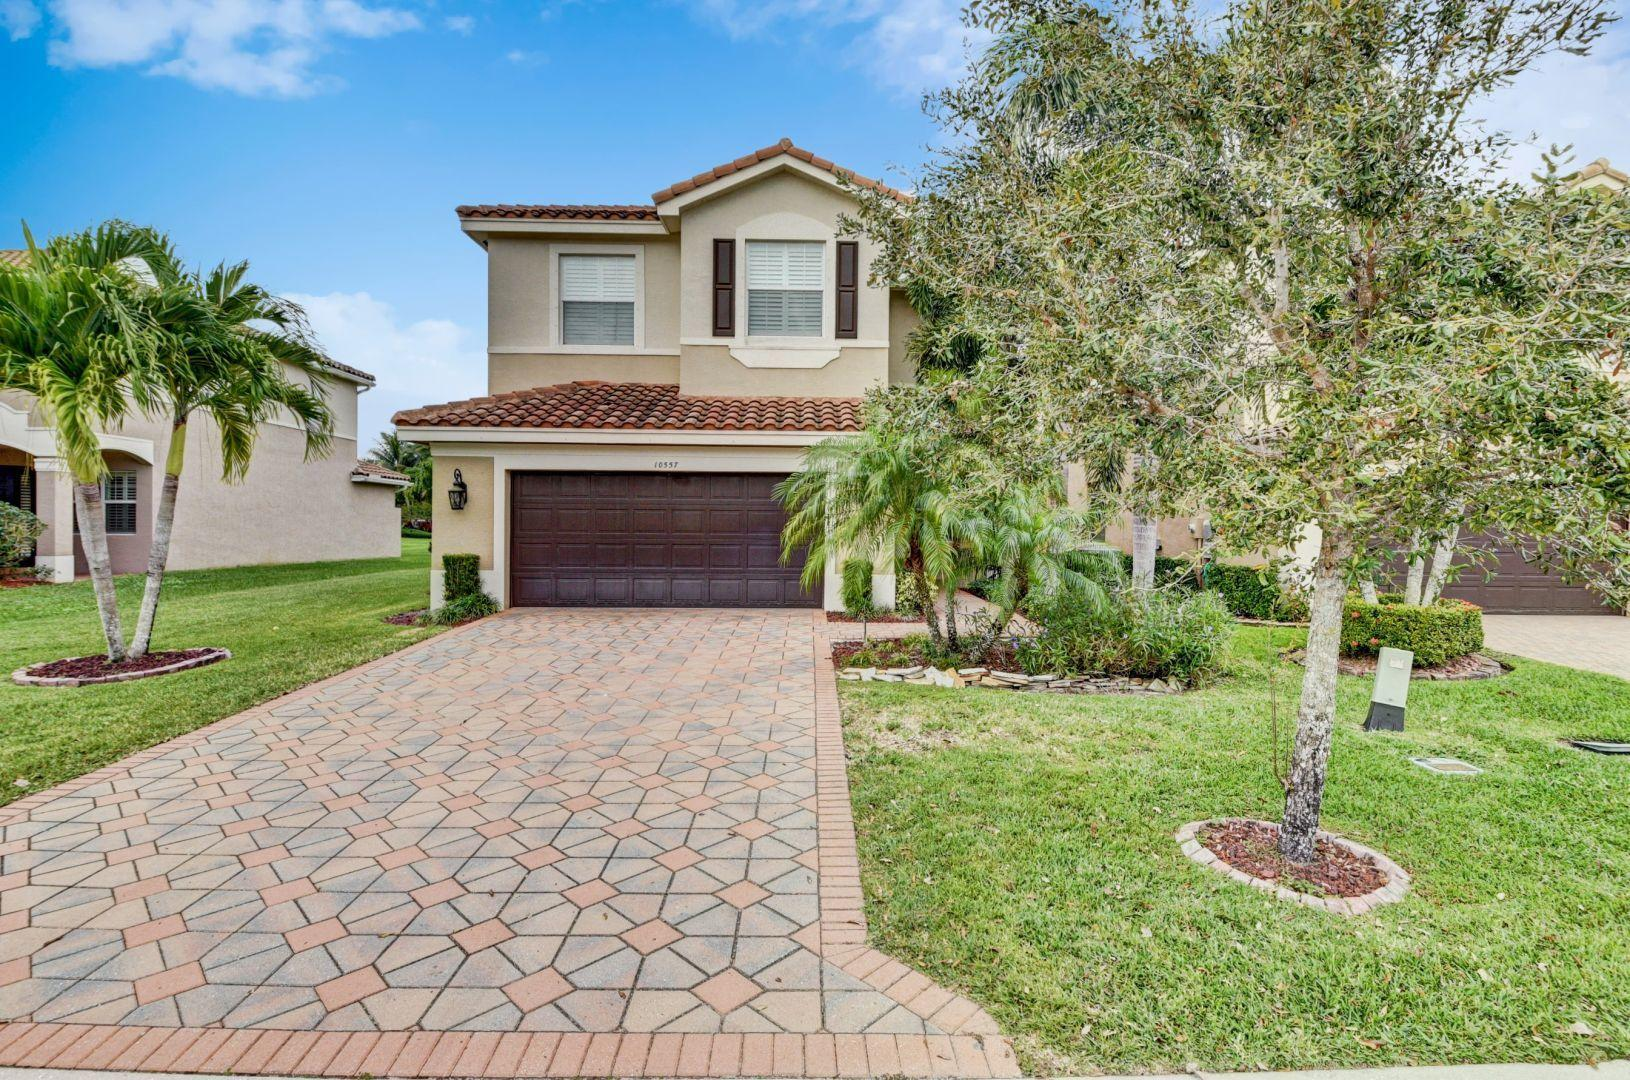 10557 Cape Delabra Court Boynton Beach, FL 33473